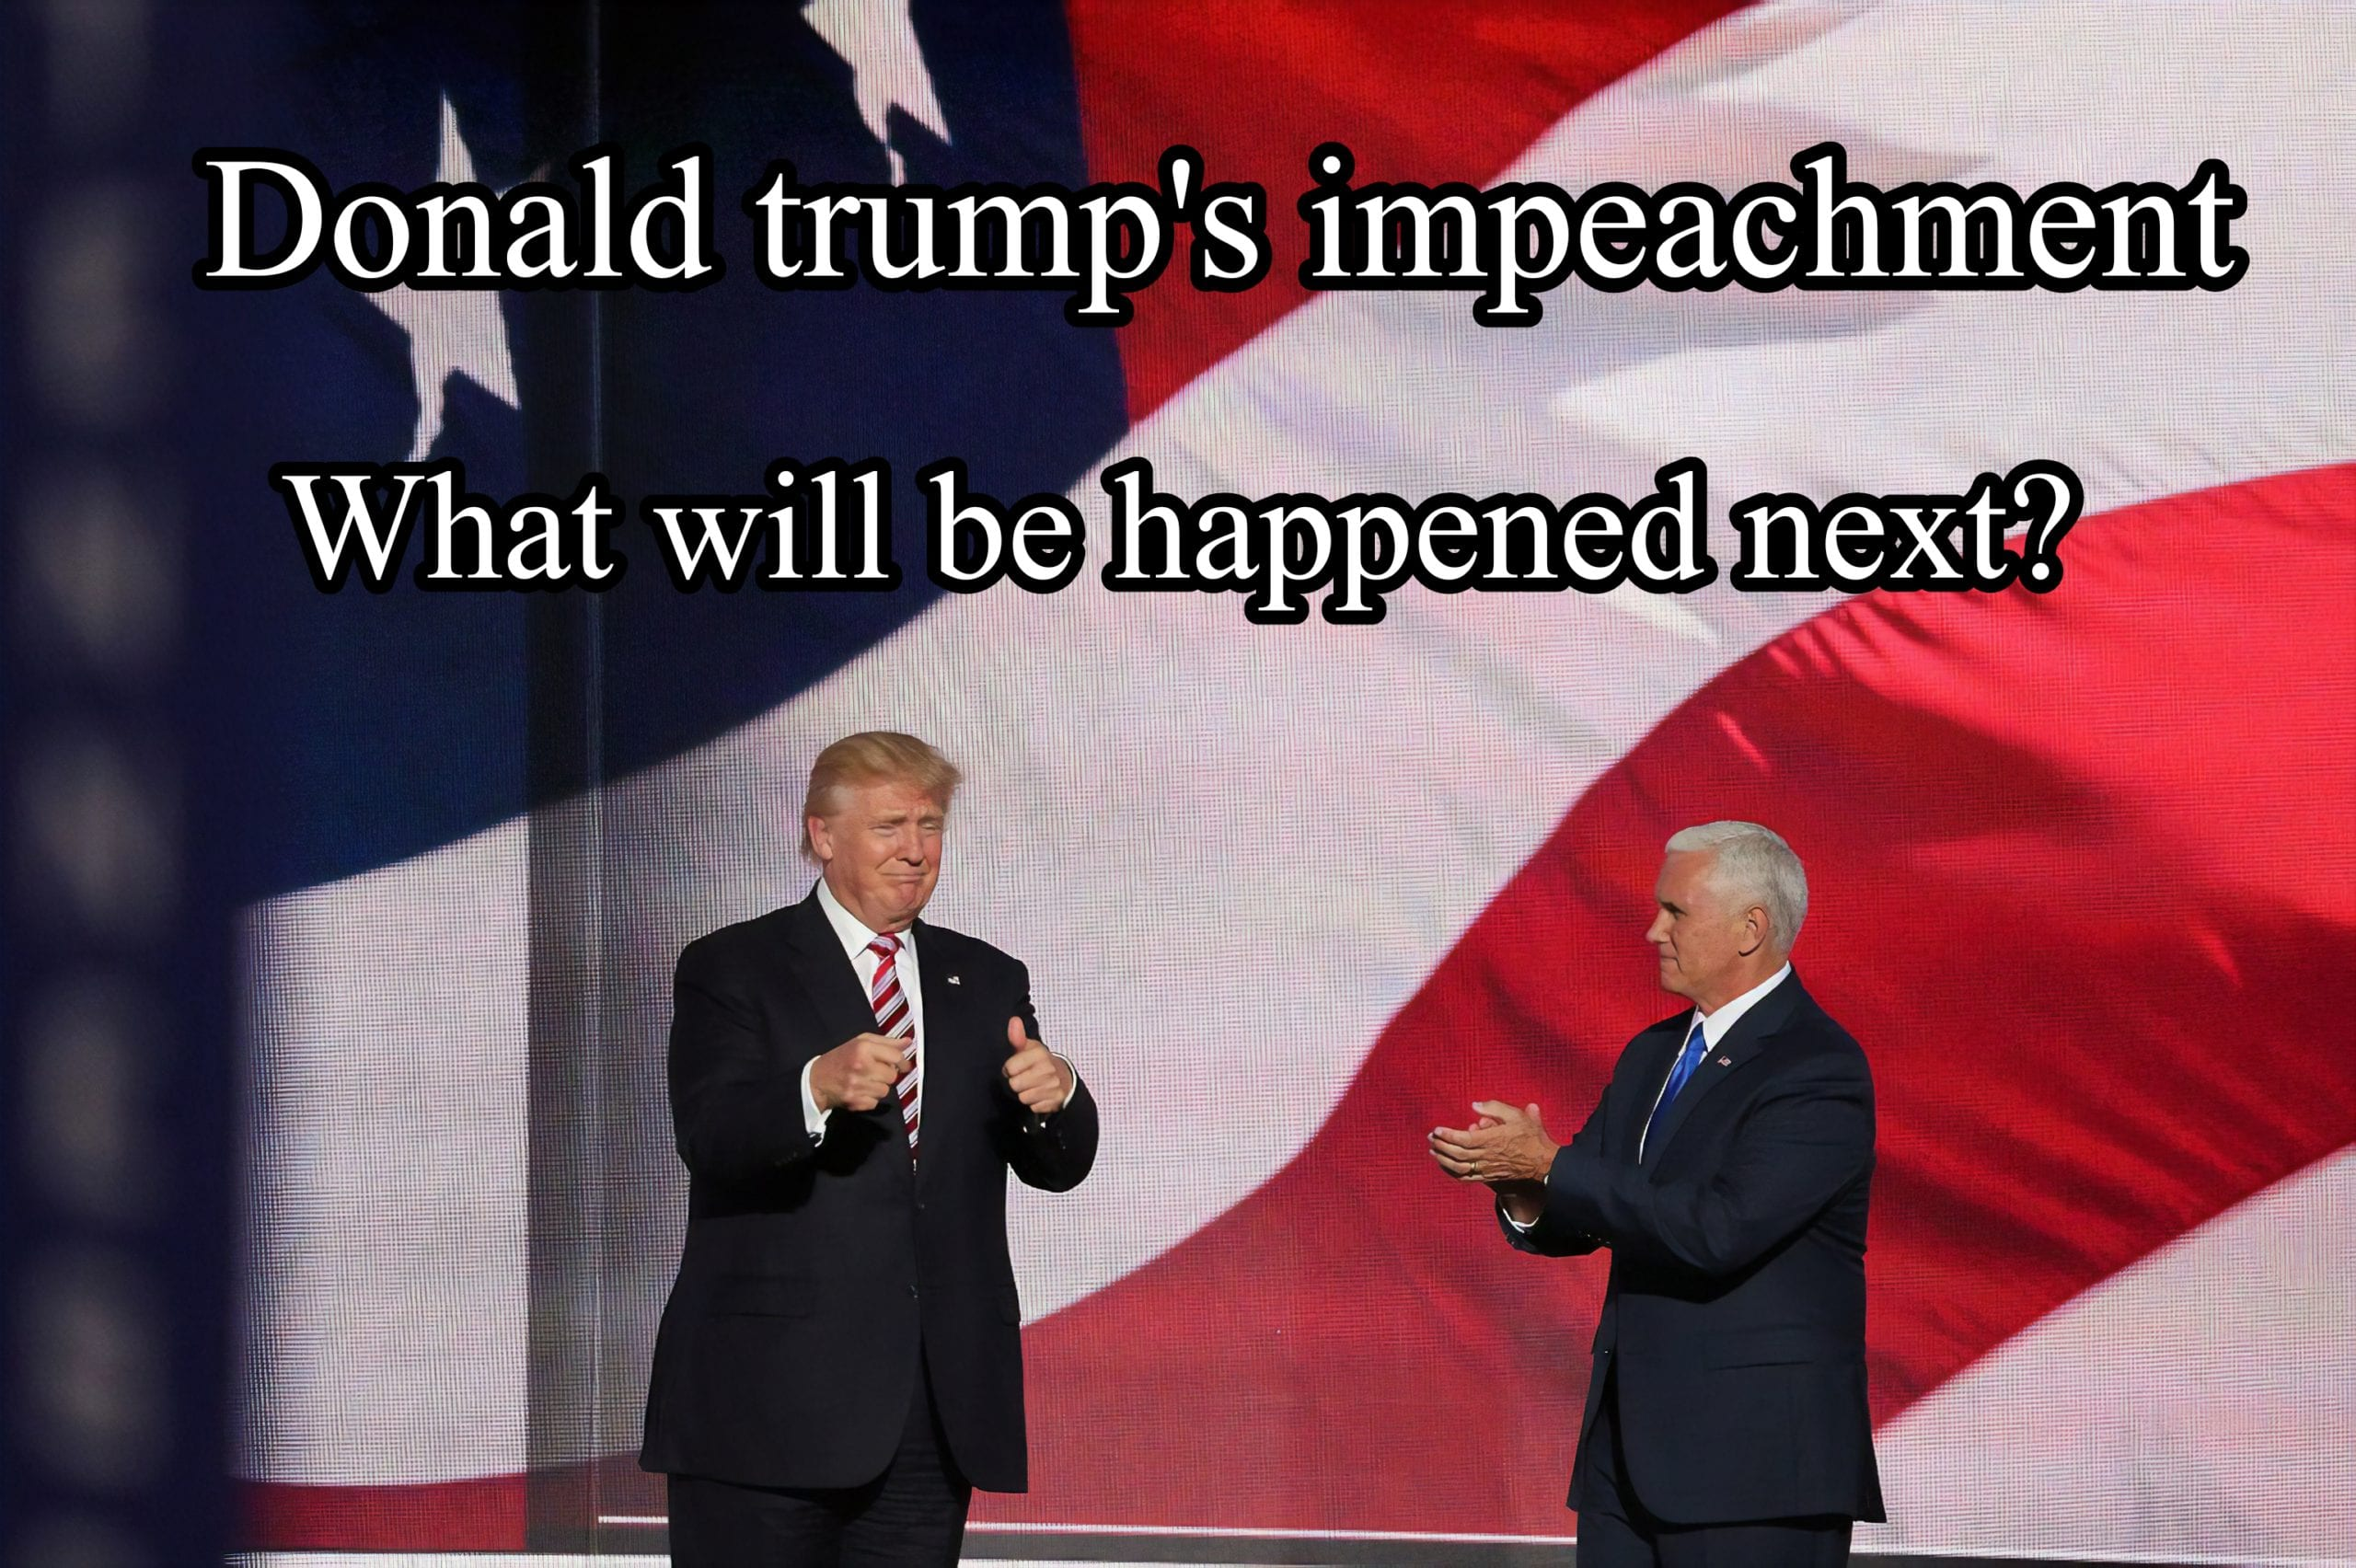 Impeachment of Donald Trump, what will be happened next?